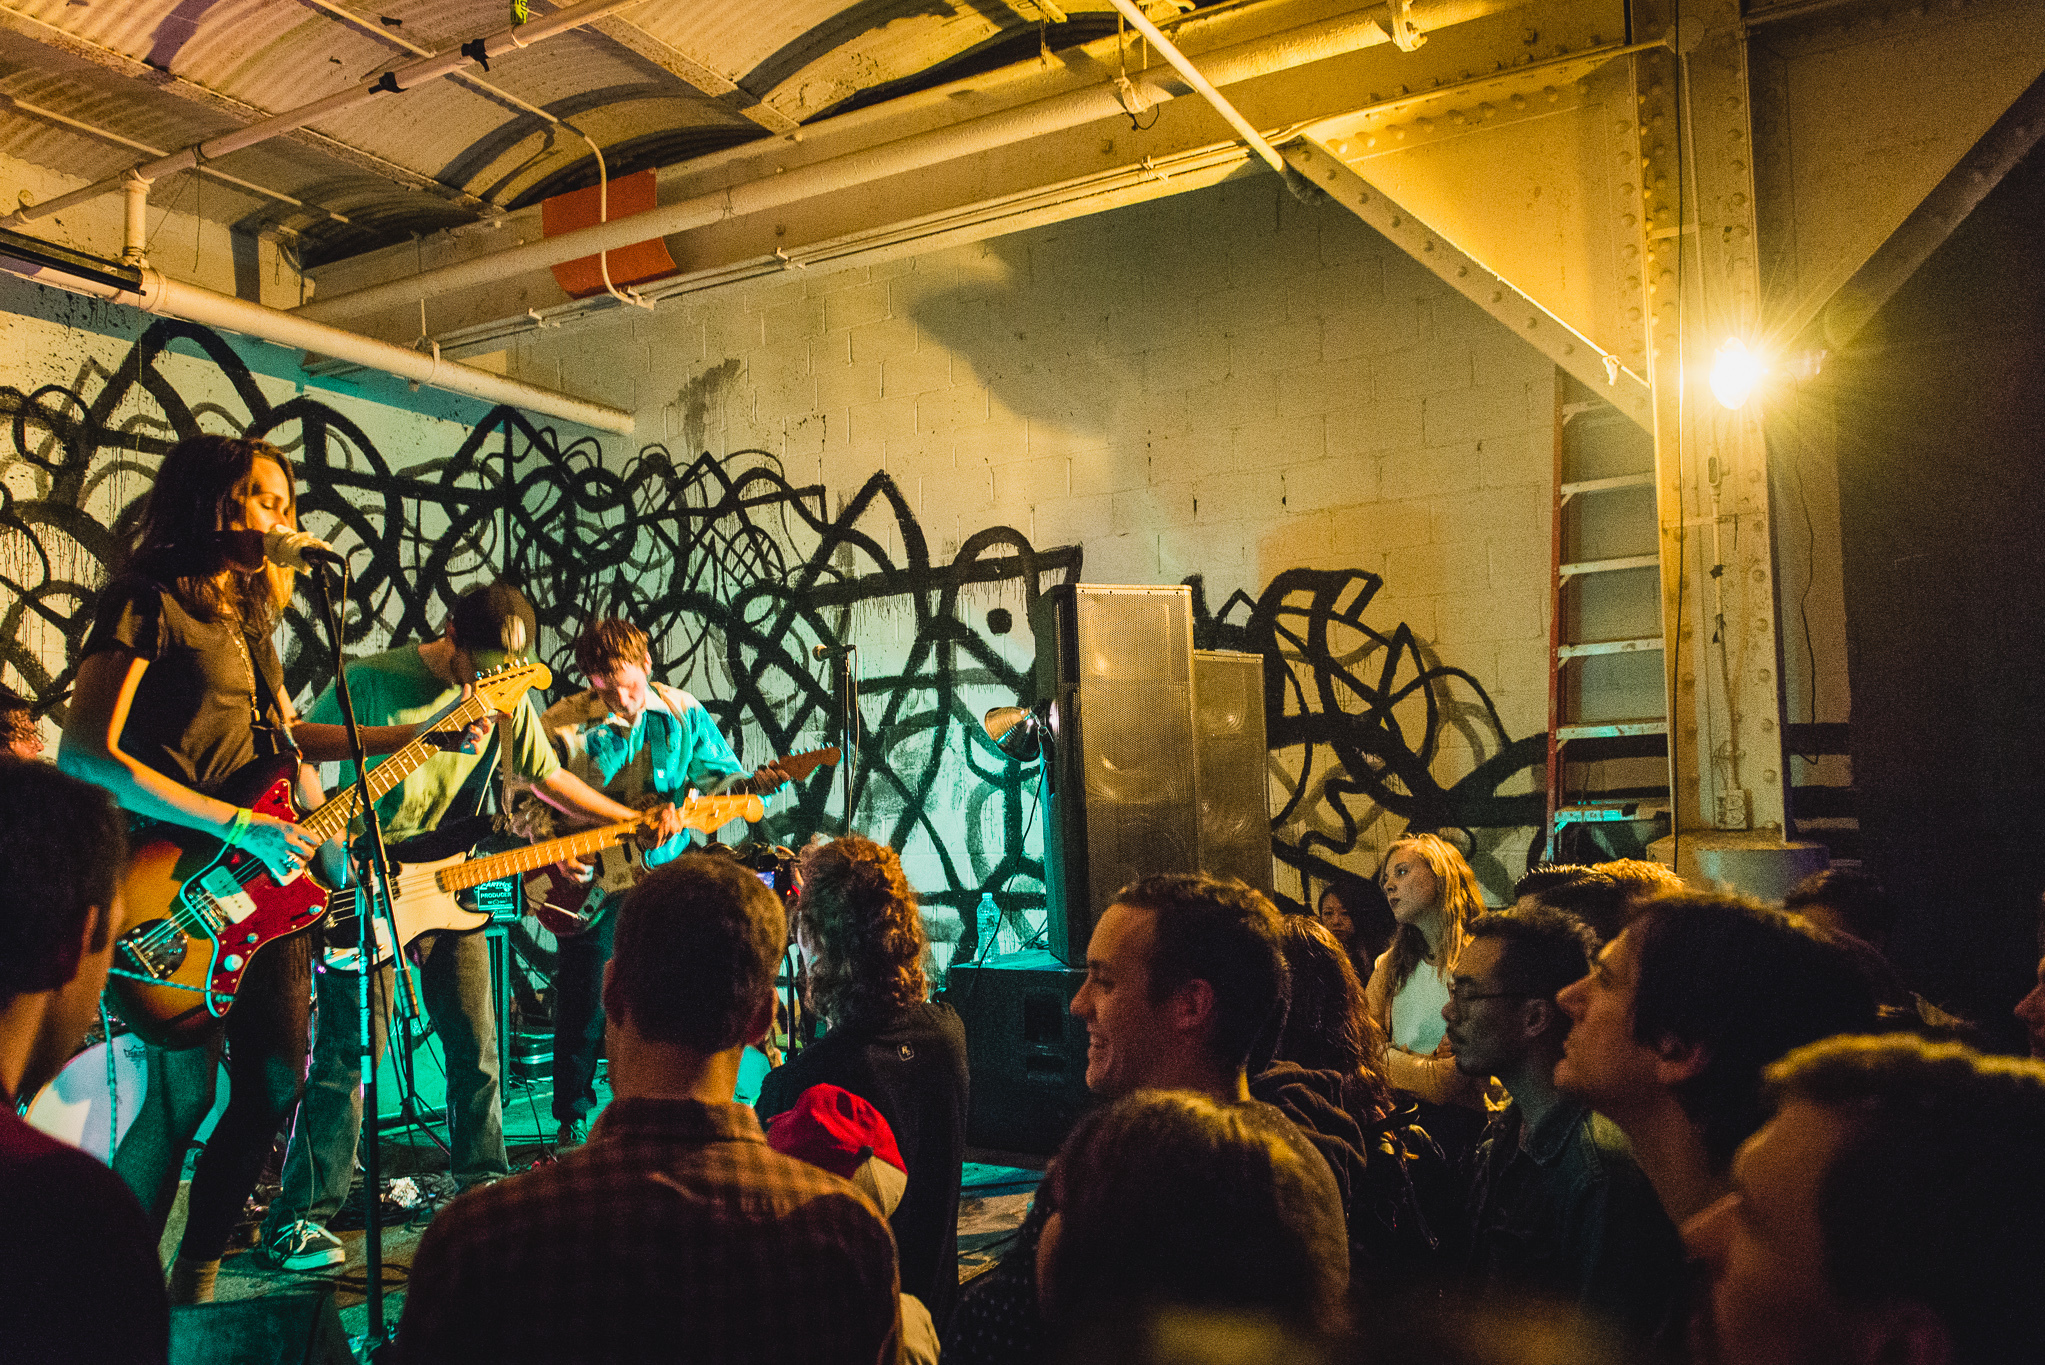 The CMJ Music Marathon is probably not happening this year